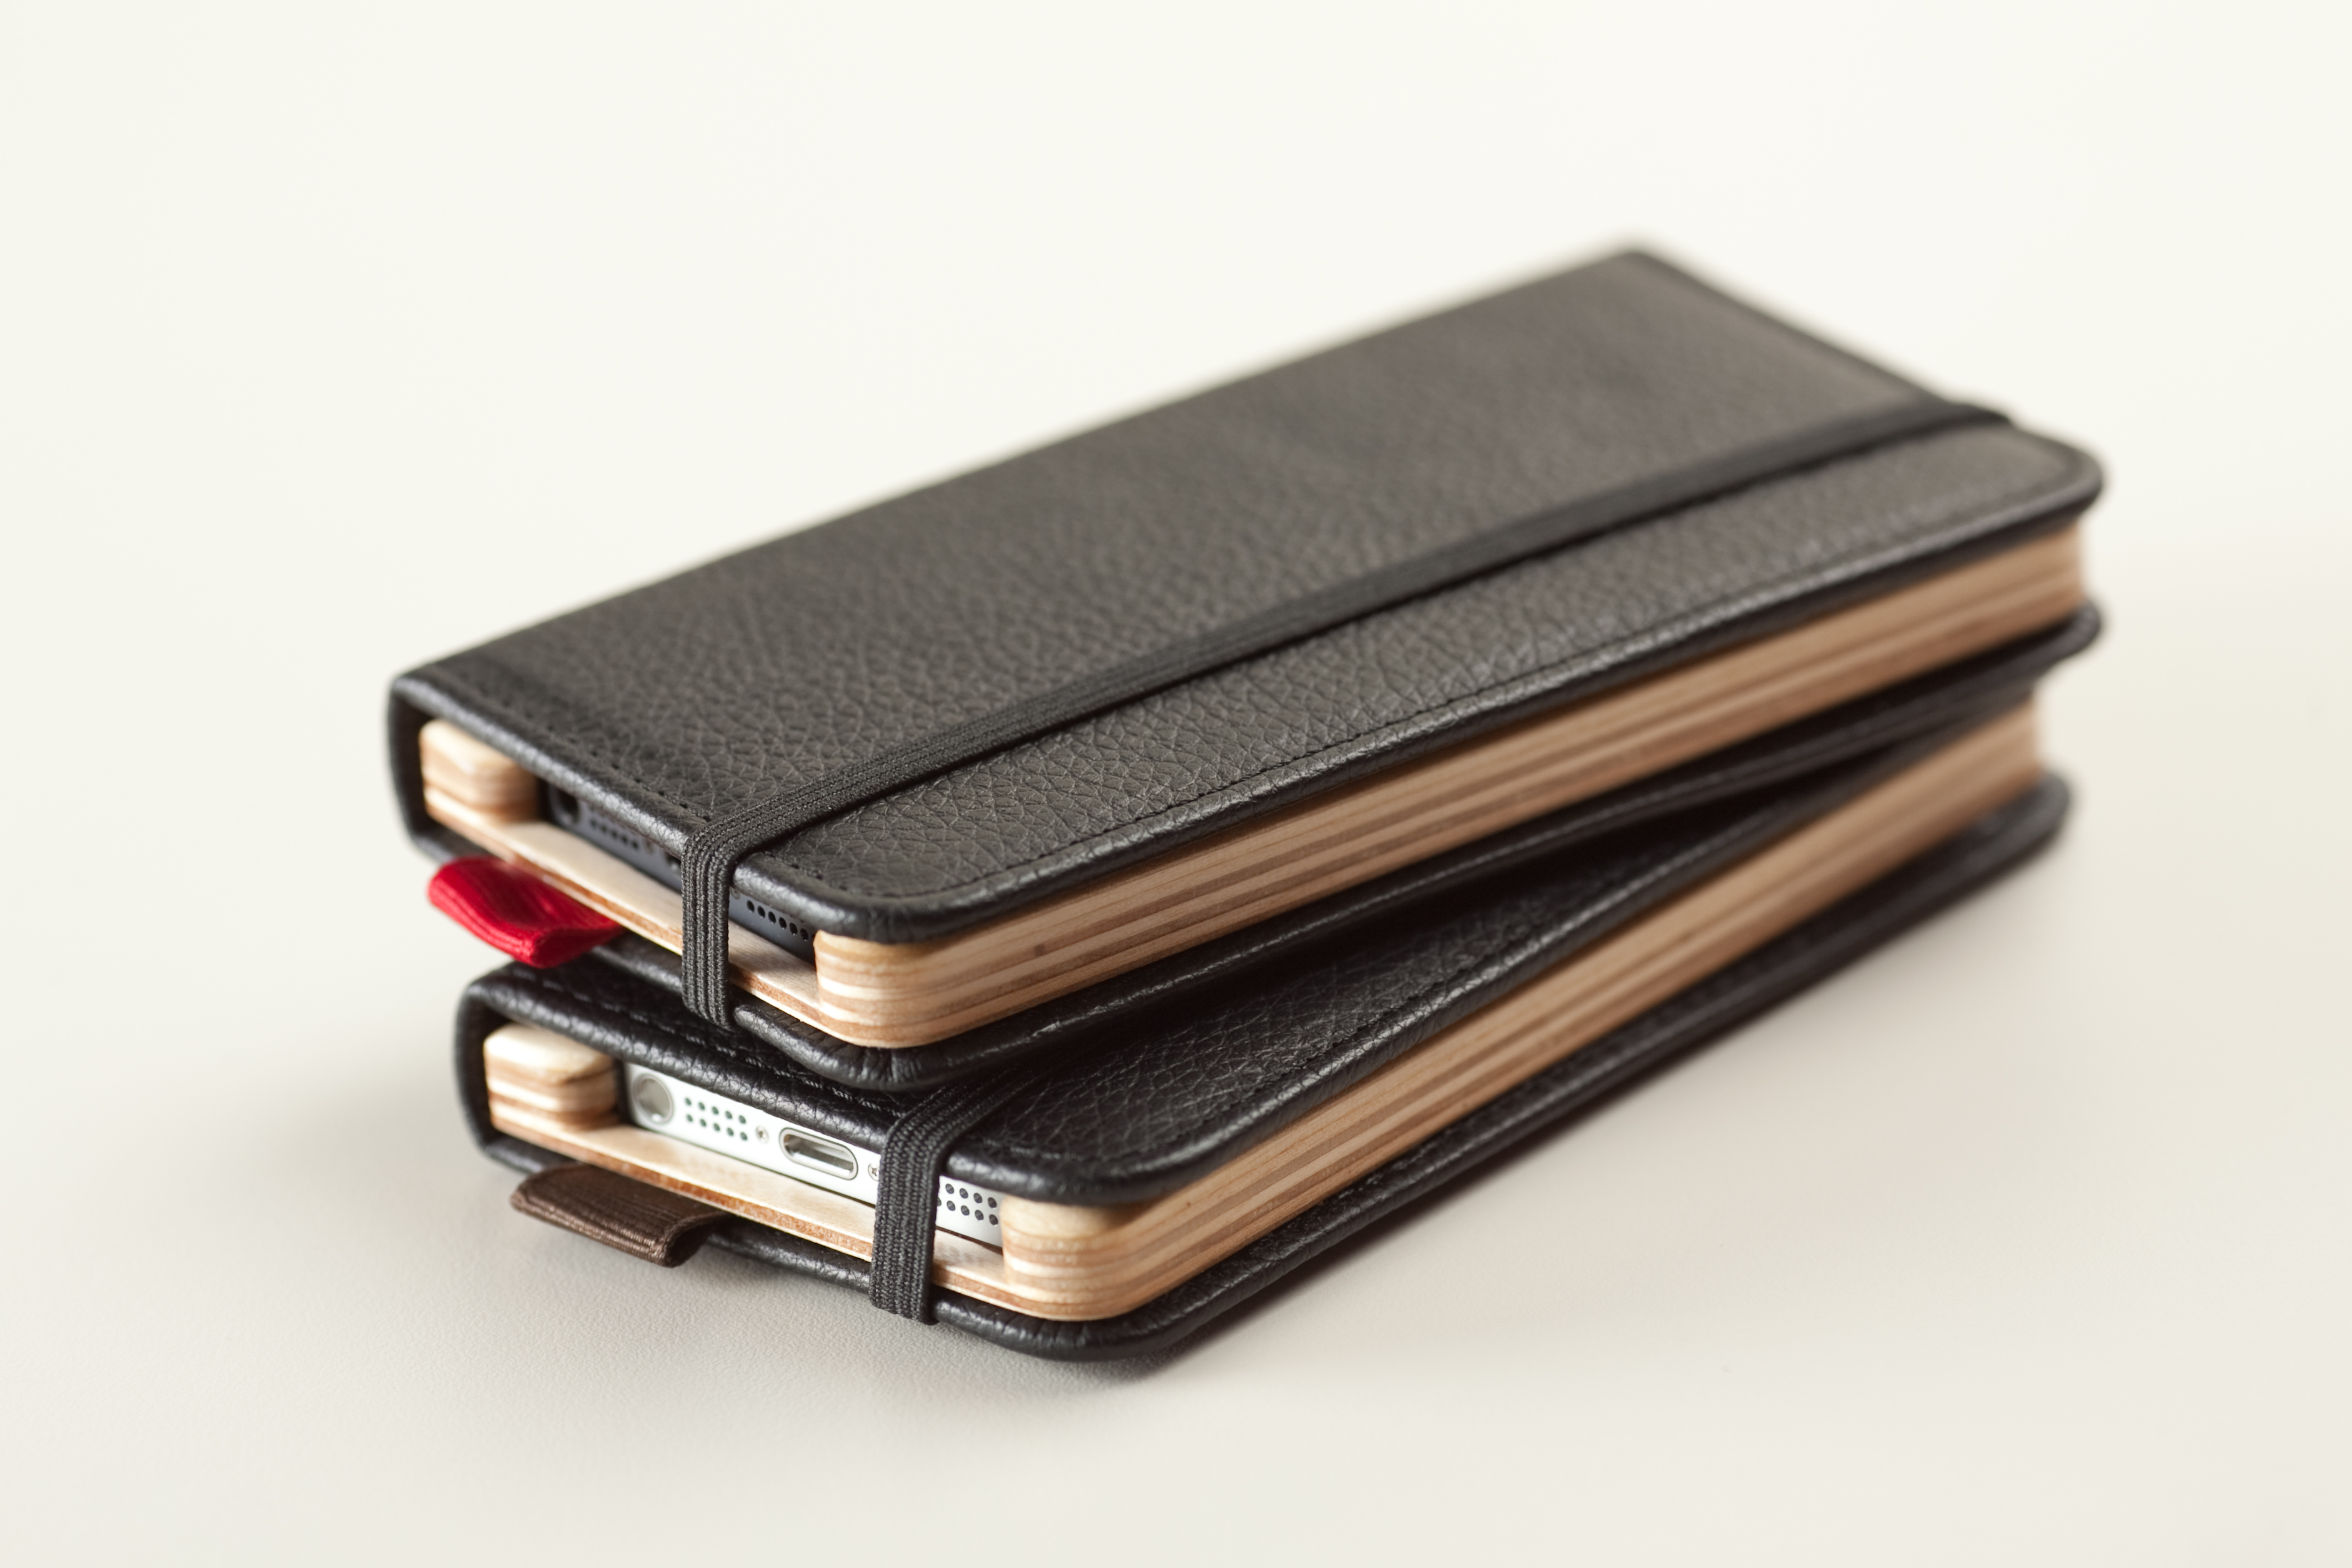 The Little Pocket Book for iPhone 5